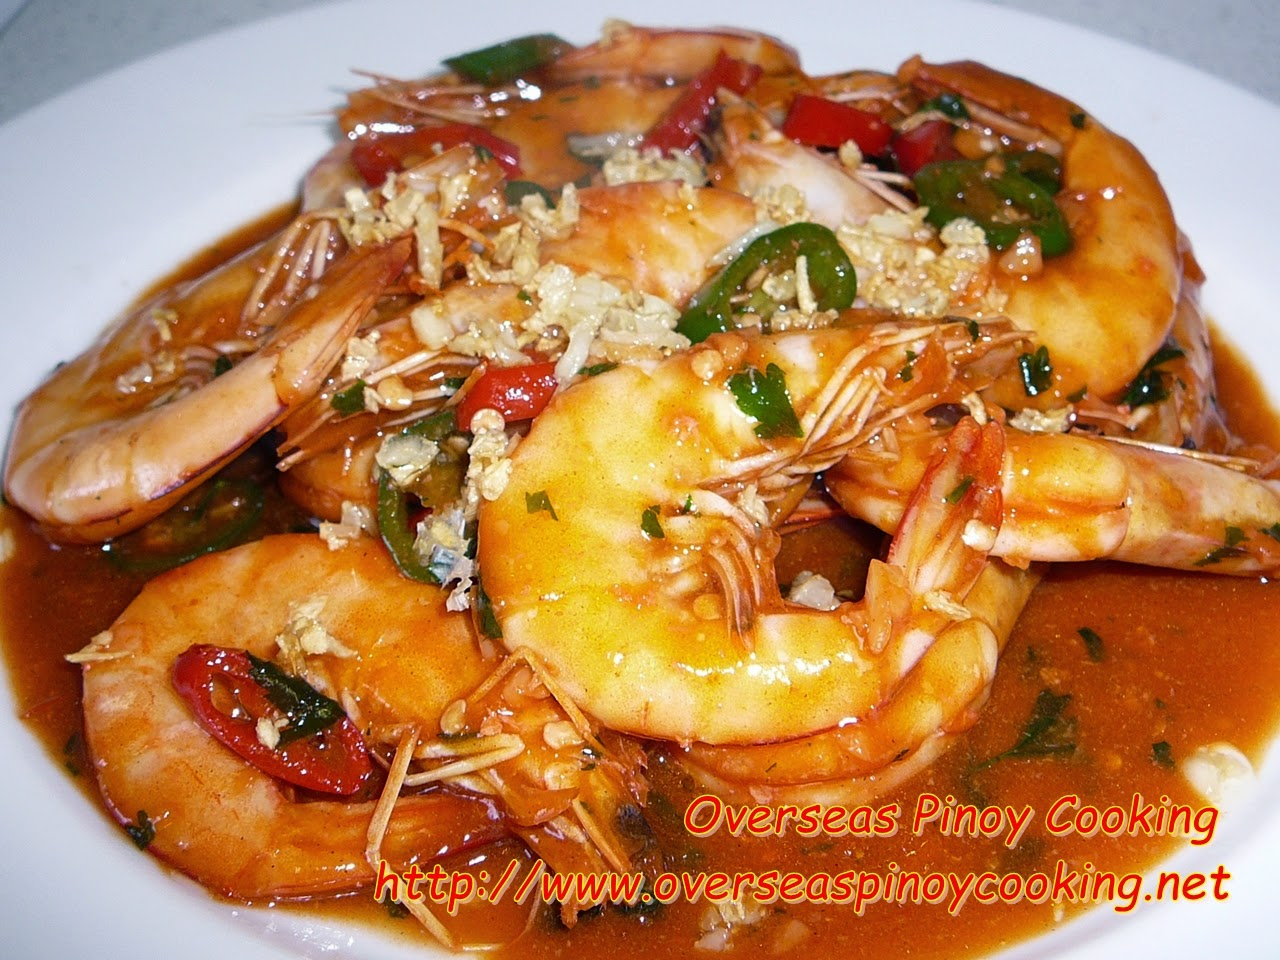 Pinoy Prawn in Sweet and Spicy Sauce